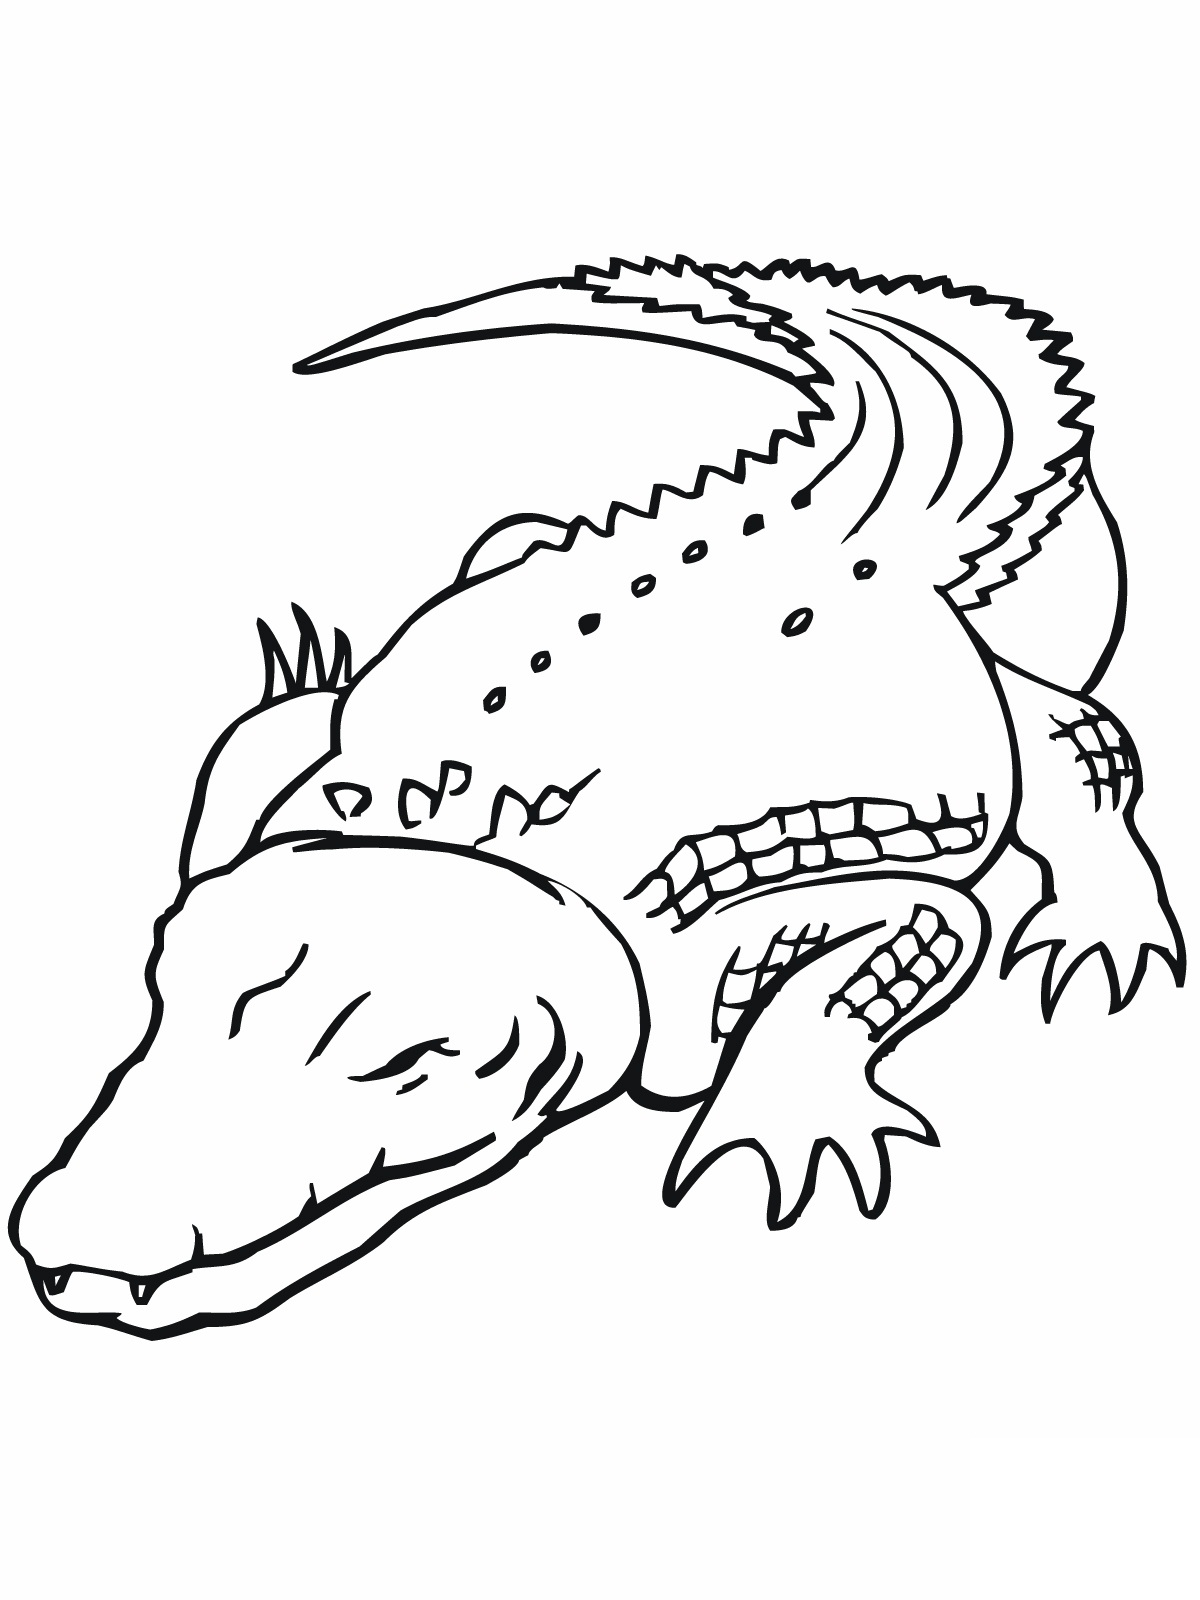 1200x1600 Free Printable Crocodile Coloring Pages For Kids